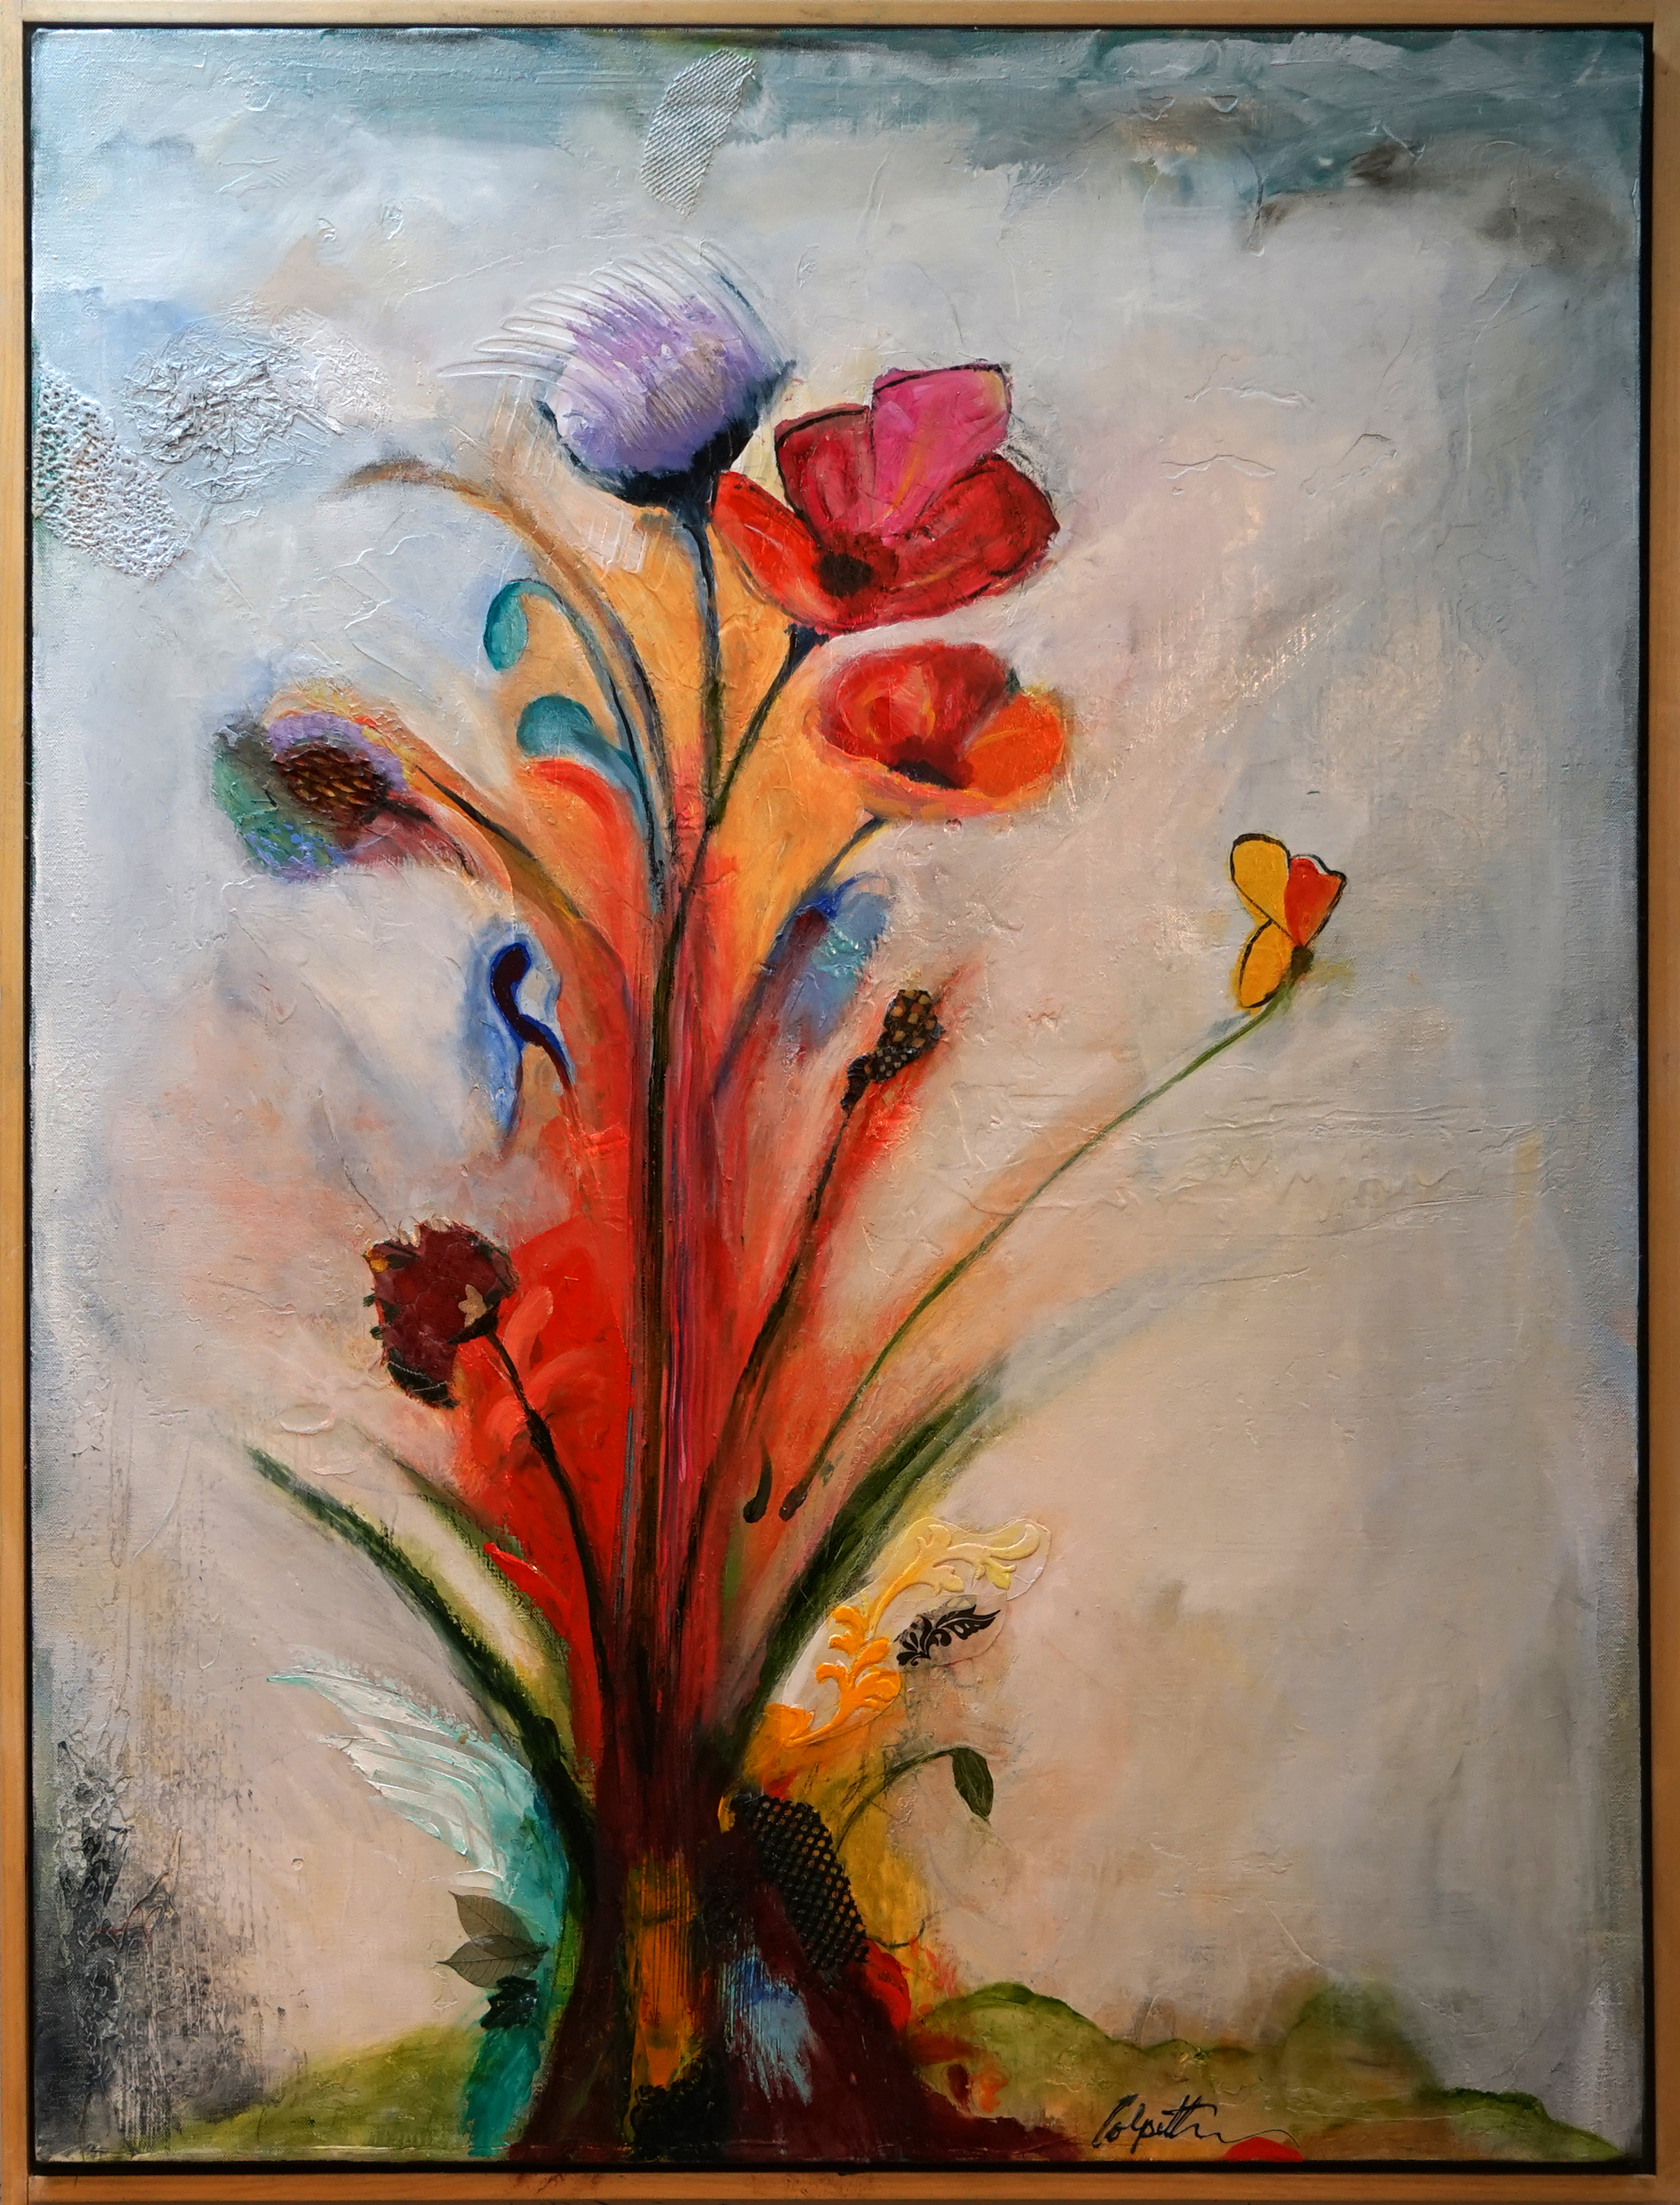 bouquet painting, Michael Colpitts paintings, Mixed Media on Canvas, abstract painting of flowers, modern abstract paintings, original abstract paintings, large abstract paintings, abstract paintings on canvas Large Painting Mixed Media on Canvas Wall Art Abstract Simplistic, Mixed Media on Canvas, colorful abstract paintings, large abstract paintings for sale, bold paintings, modern paintings